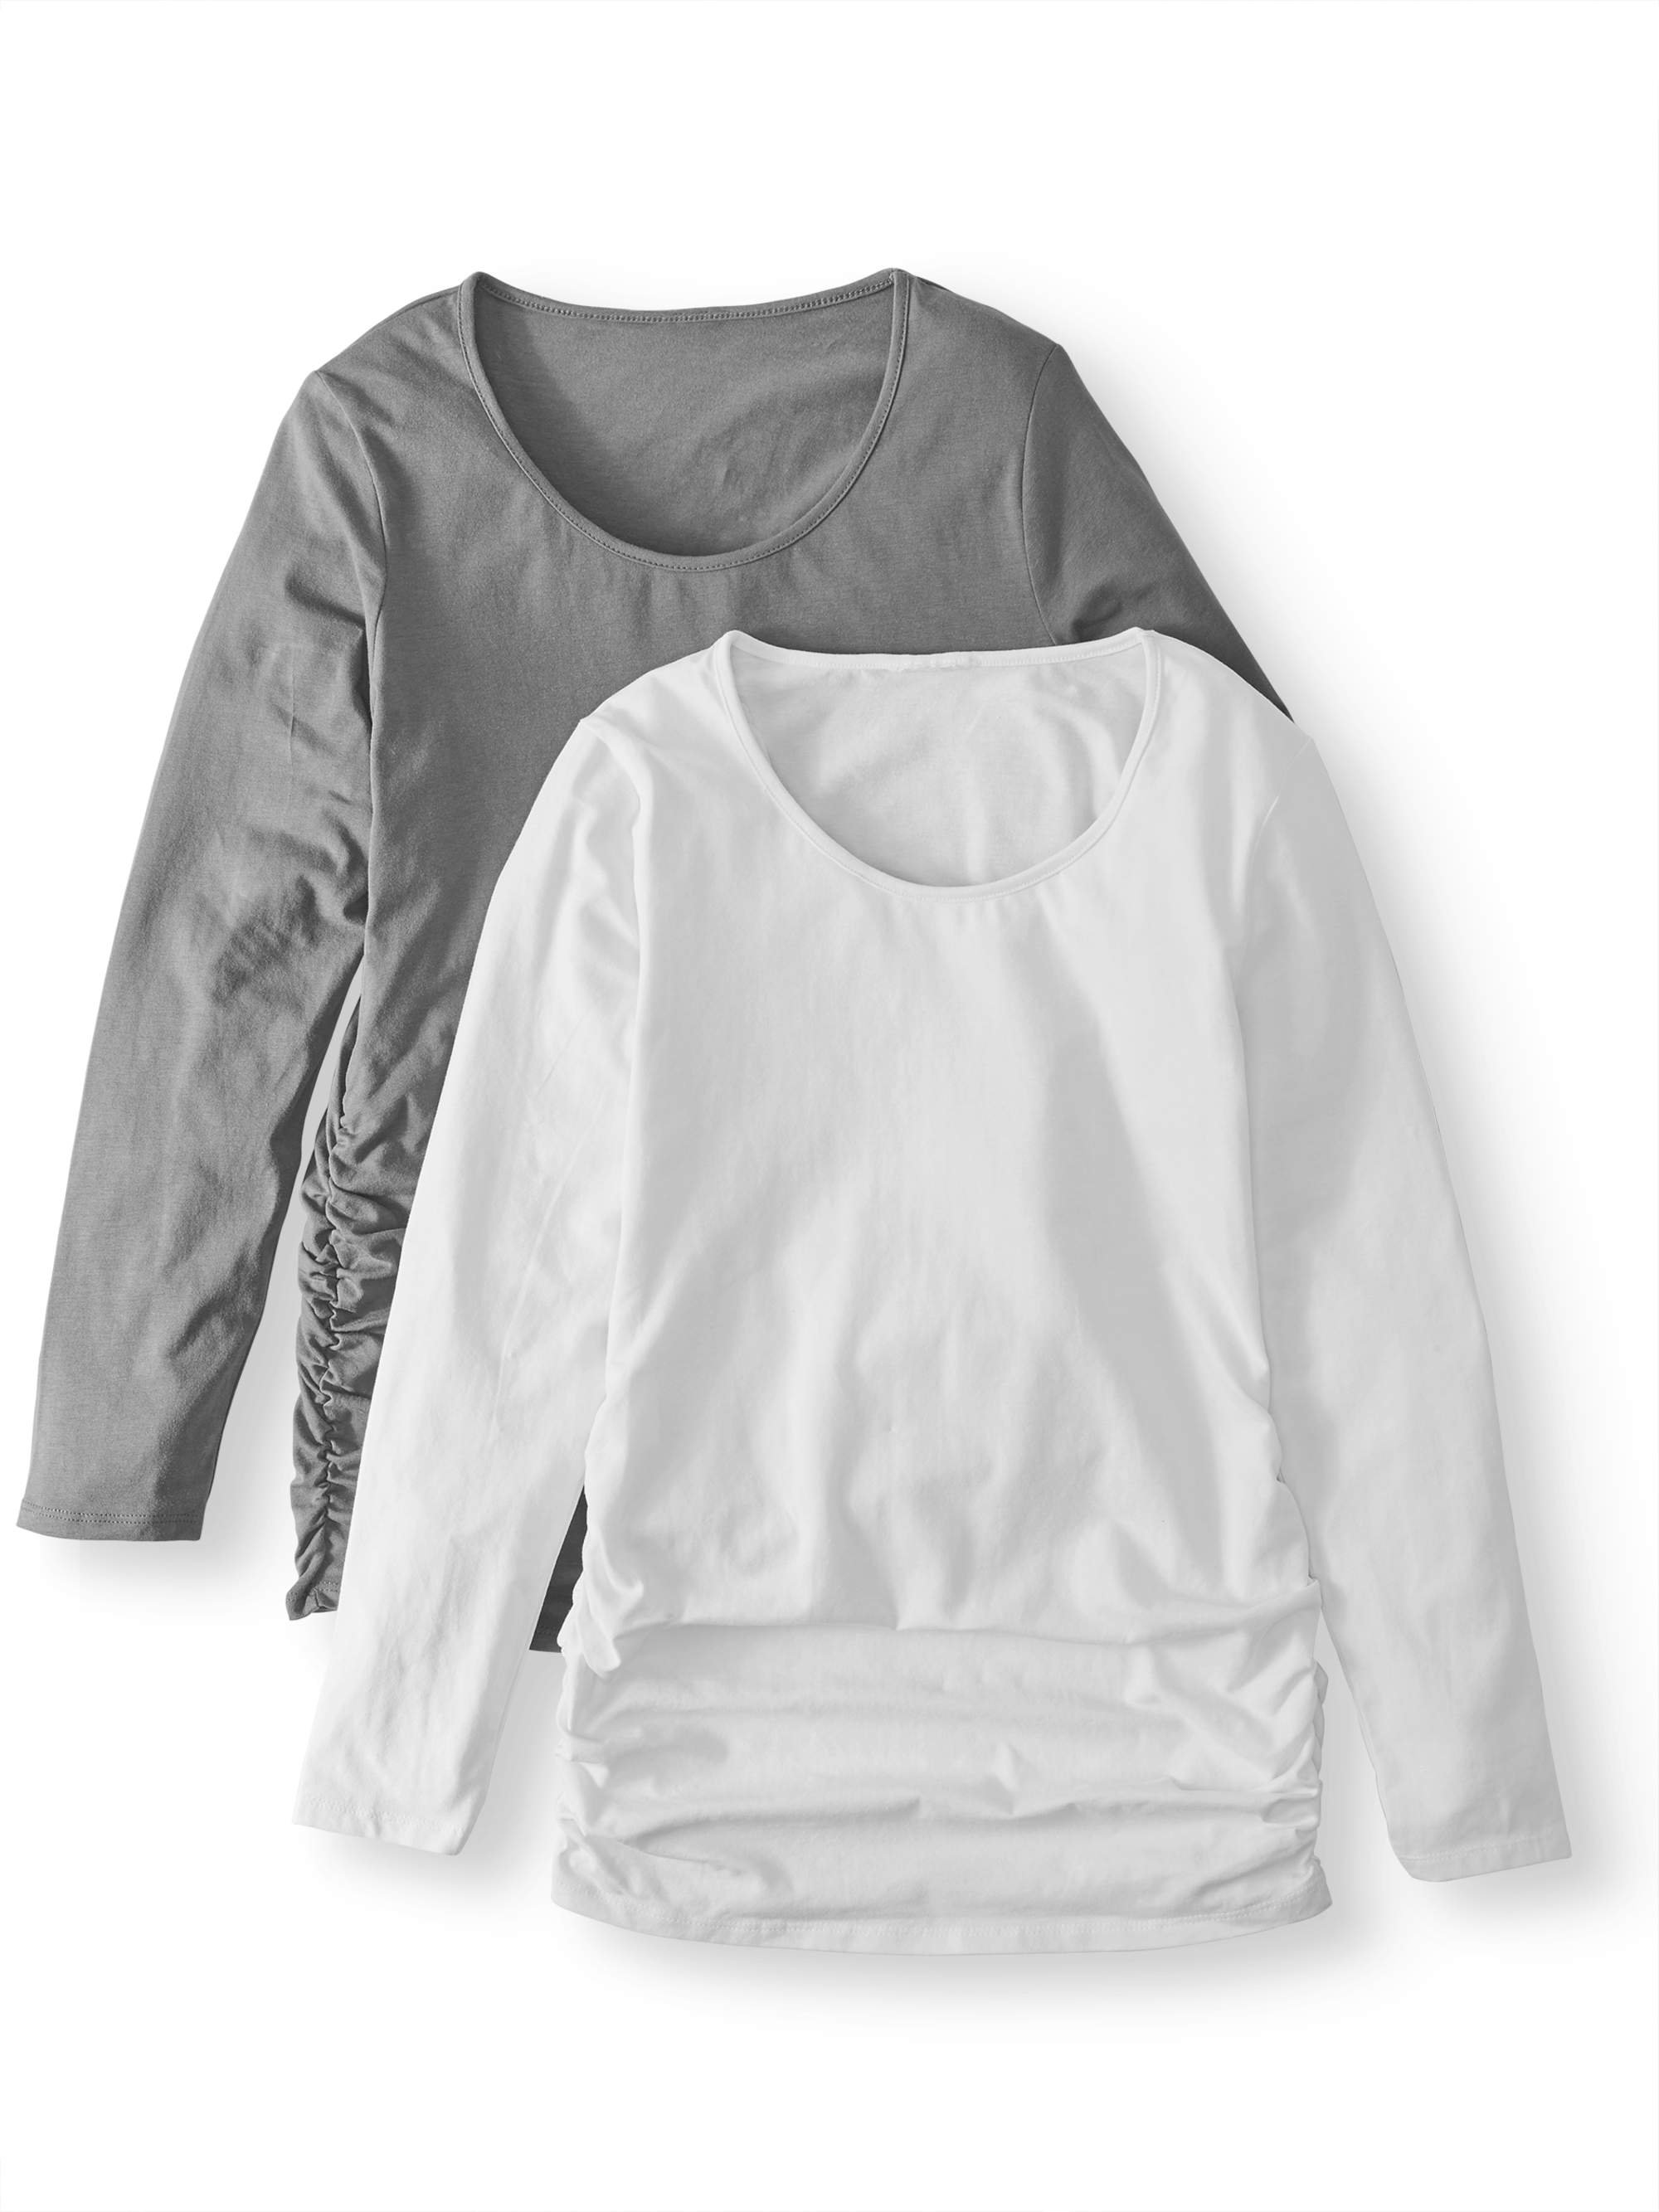 Maternity Long Sleeve Top, 2-Pack Available in Plus Sizes by I E INDUSTRIES